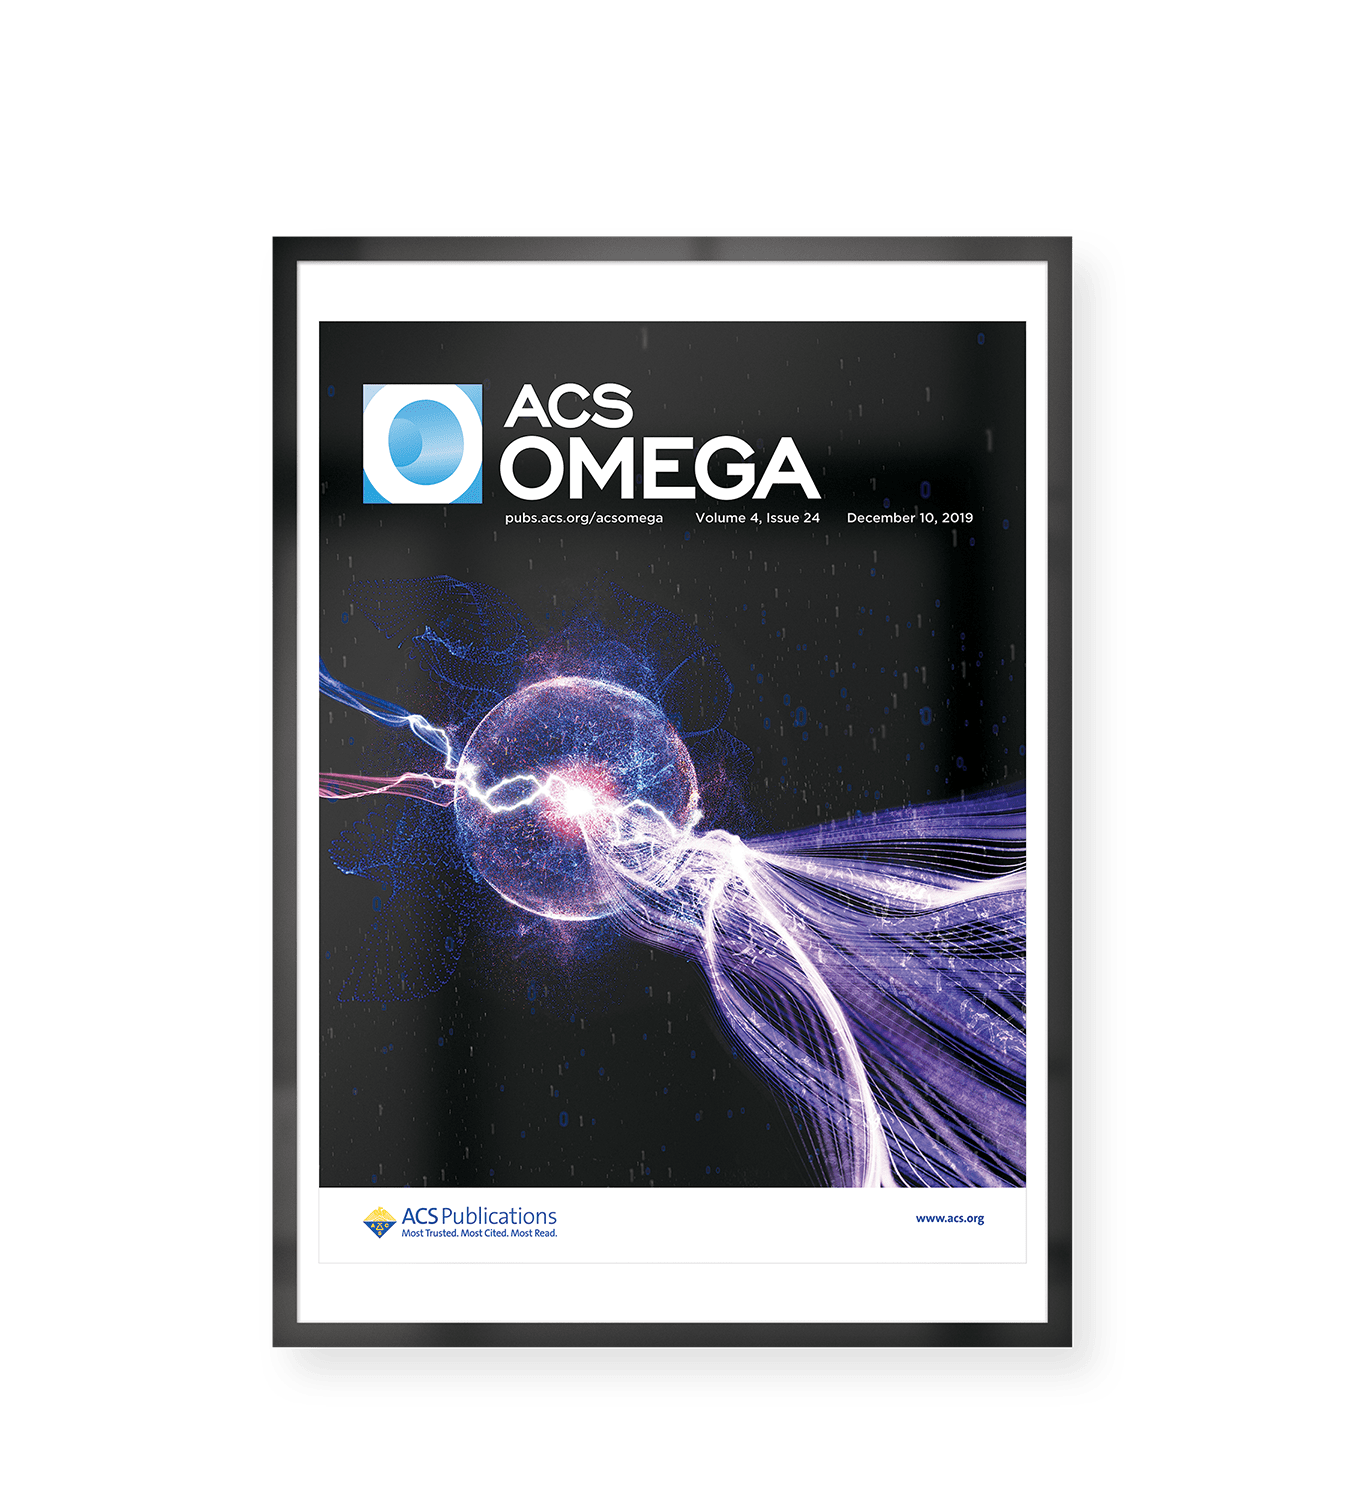 Cover Image of ACS Omega representing the research of Dr. Alessandra Sutti and Dr David Ruben De Celis Leal et al: